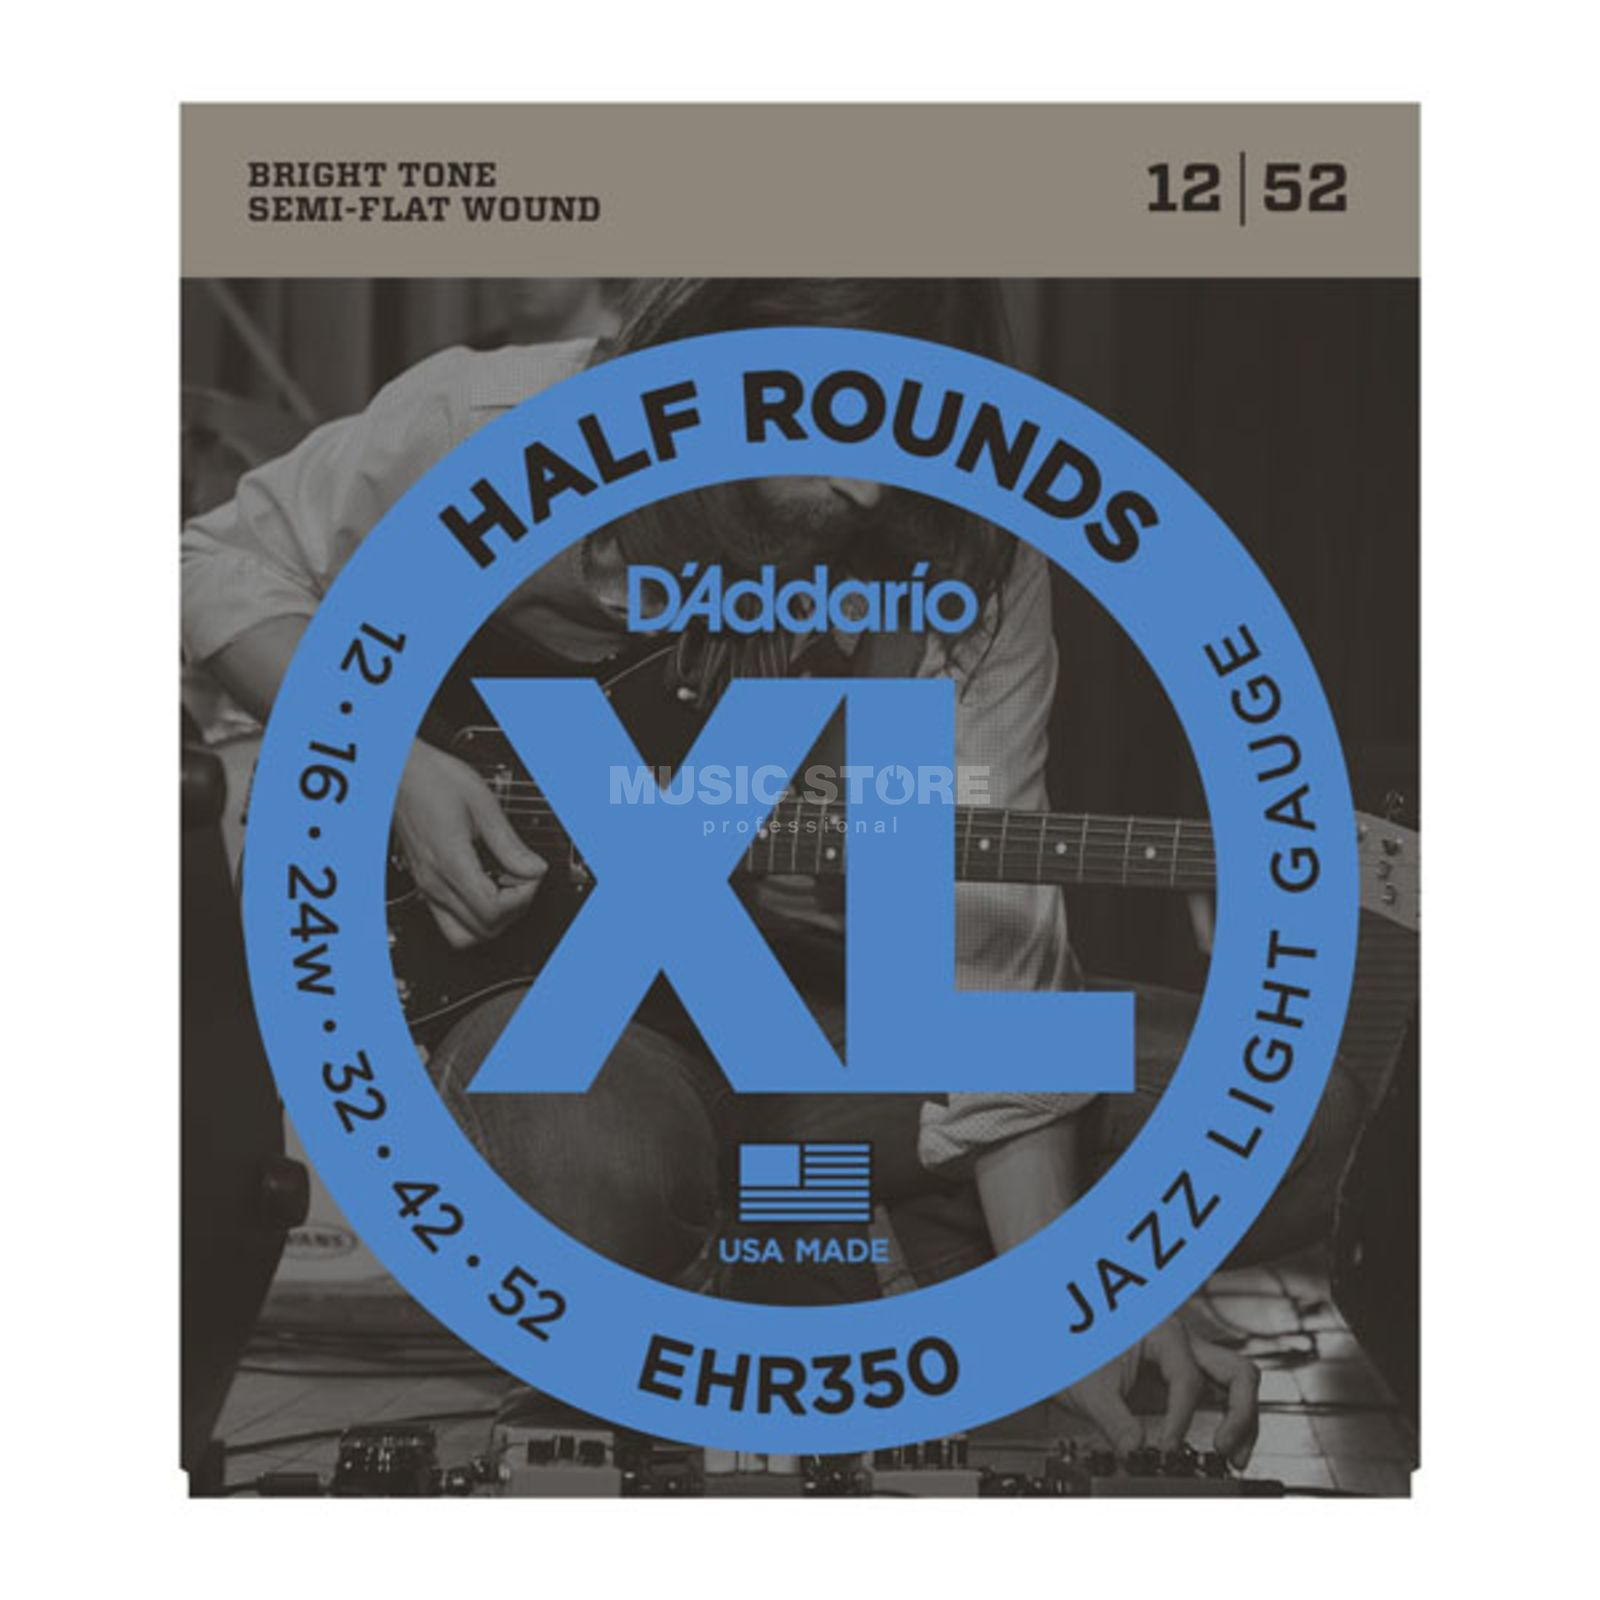 D'Addario E-Guitar Strings EHR350 12-52 Half Rounds Stainless Steel Product Image